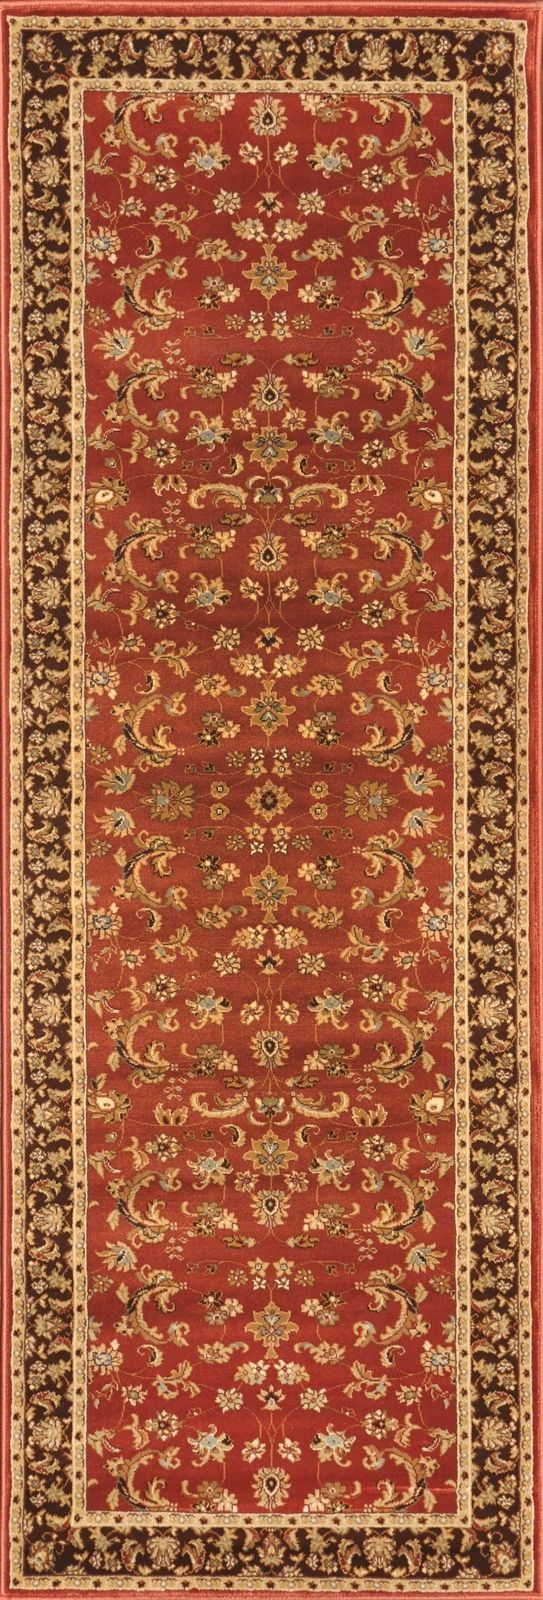 Loloi Welbourne Traditional Area Rug Collection Rugpal